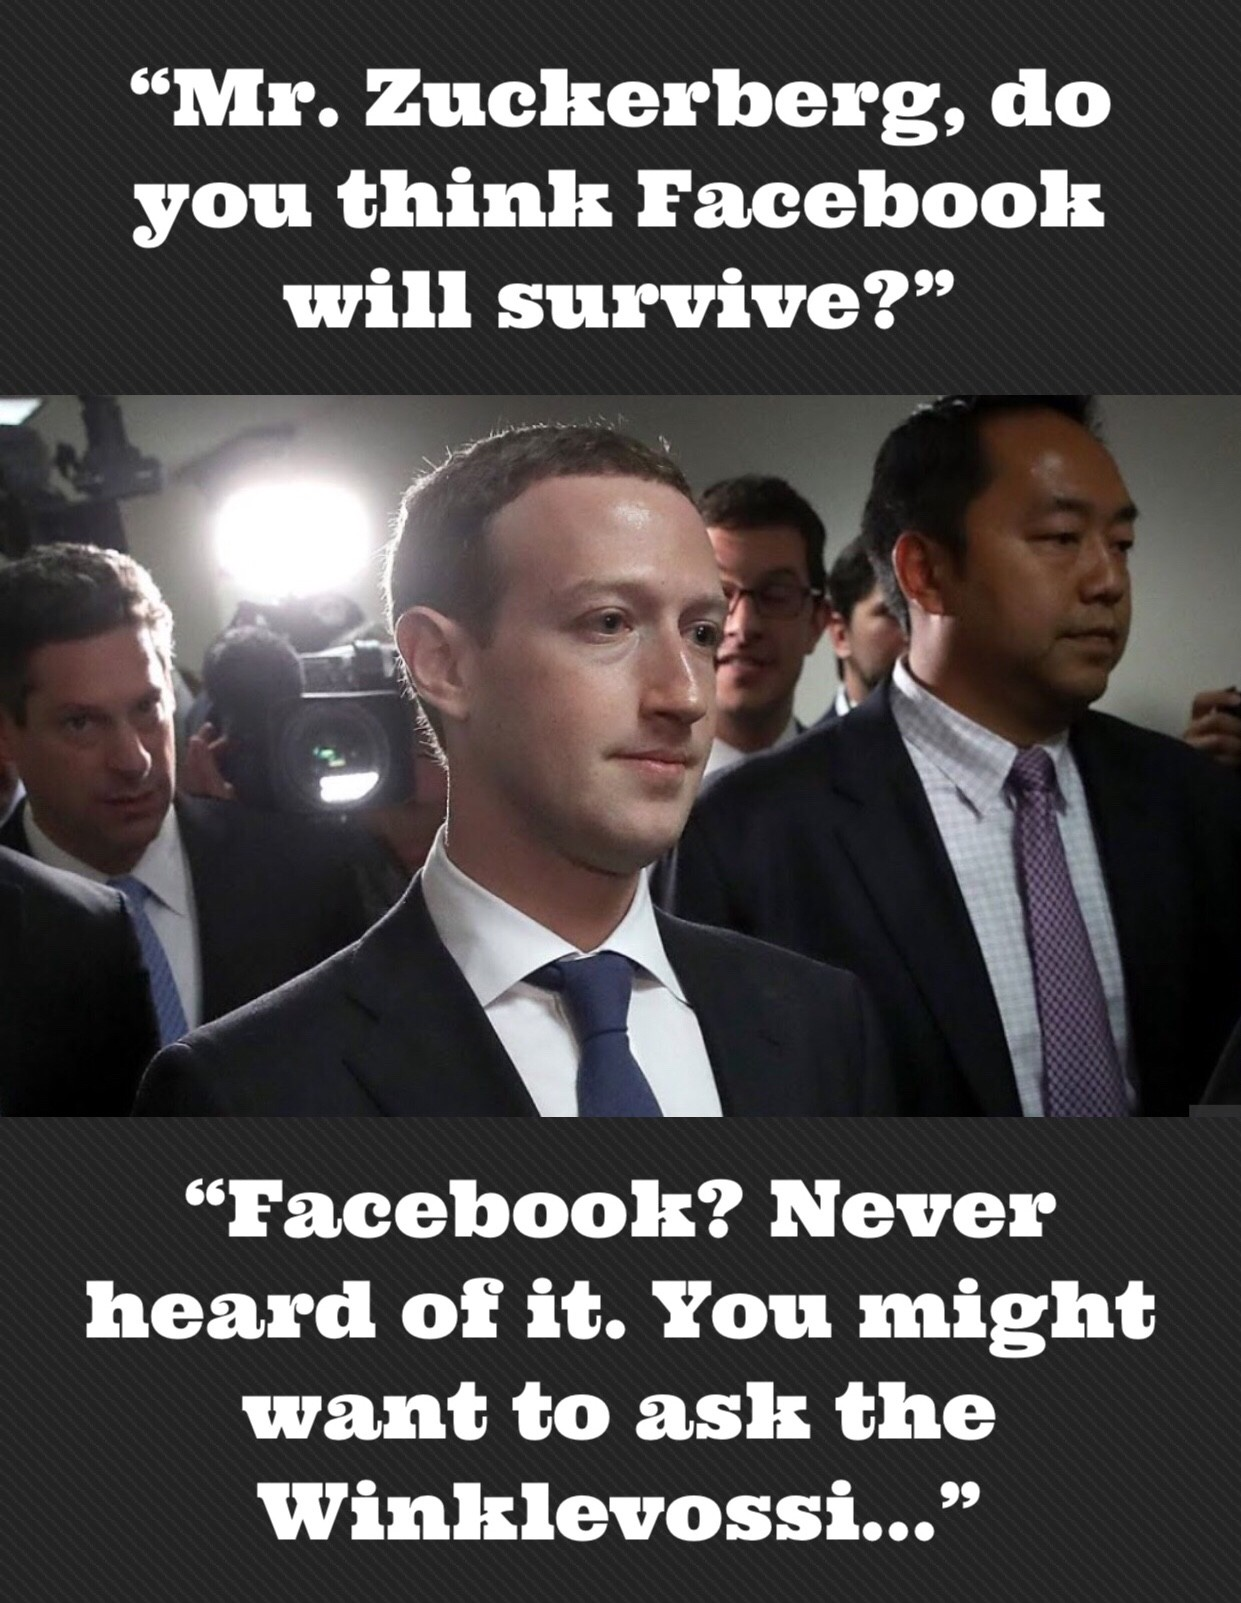 Zuckerberg Facebook Never Heard Of It Another Meme Of